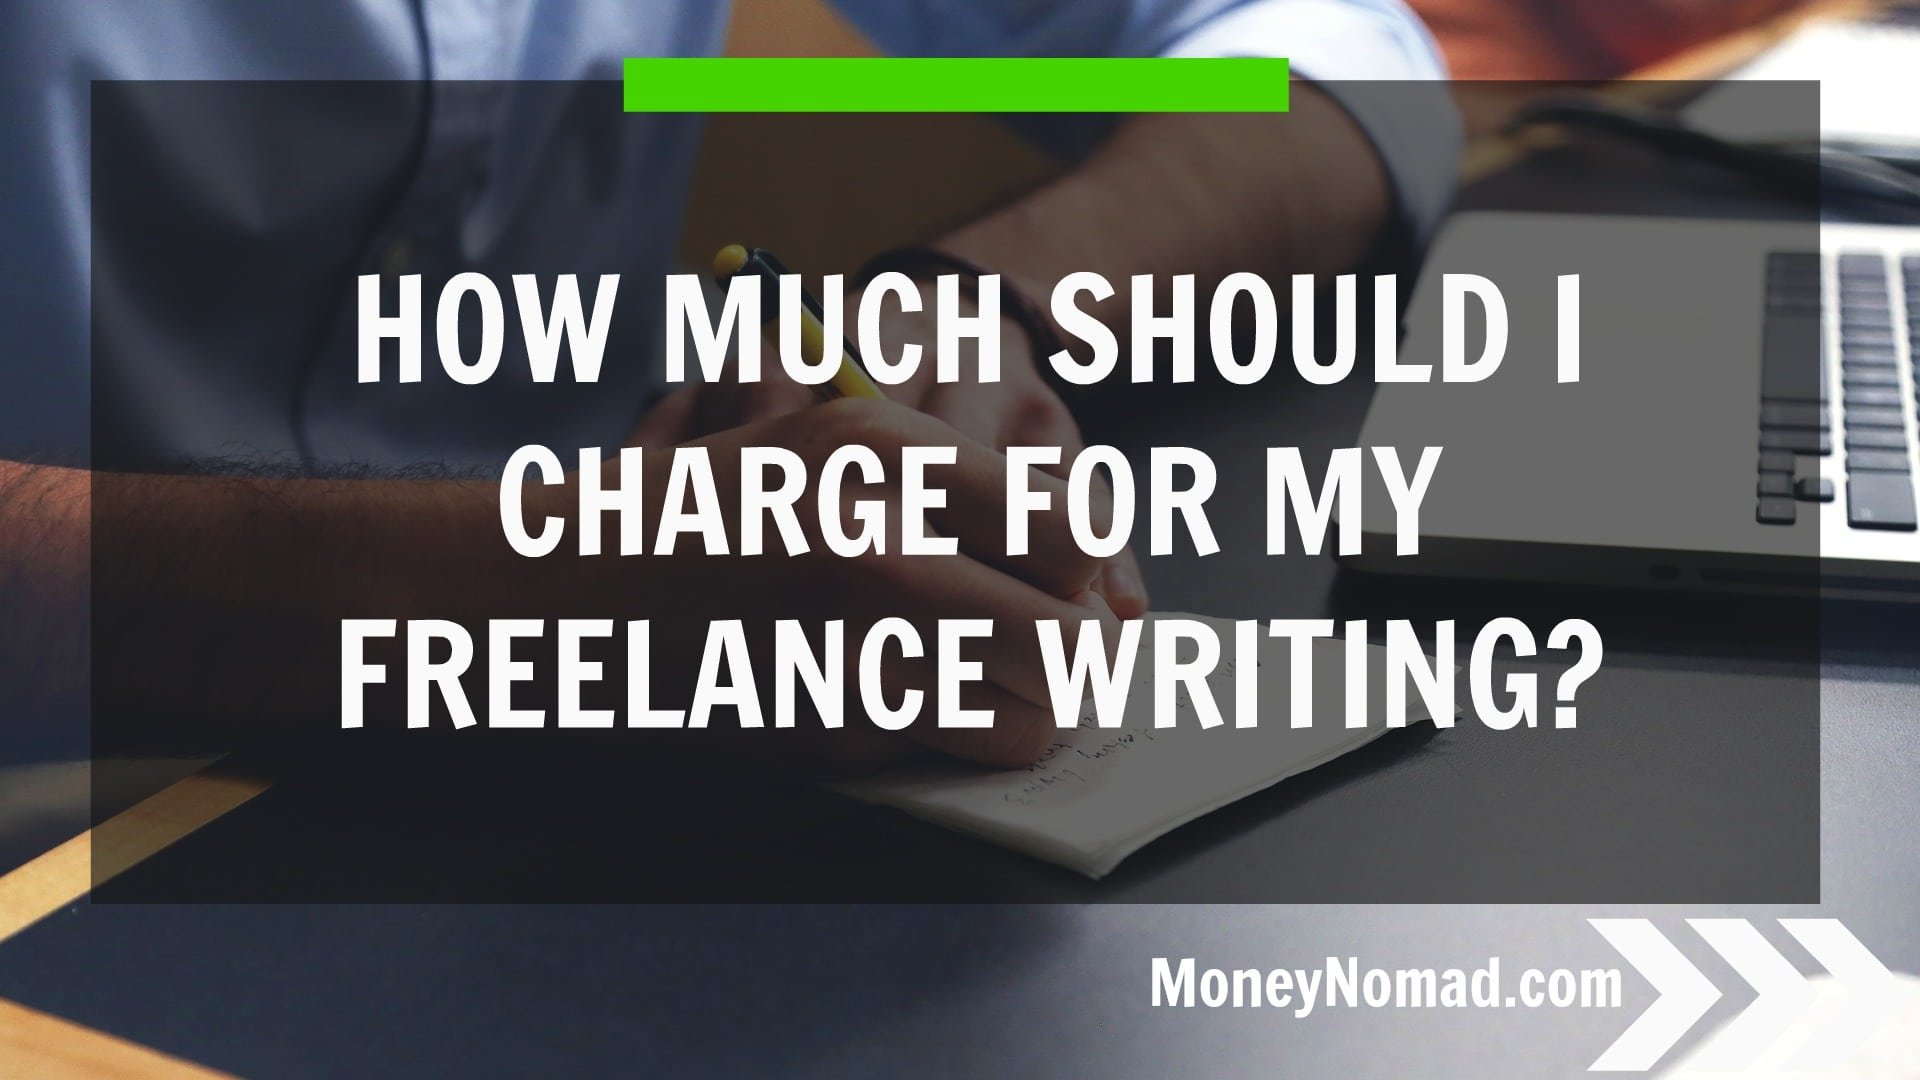 make money lance writing archives money nomad how much should i charge for my lance writing